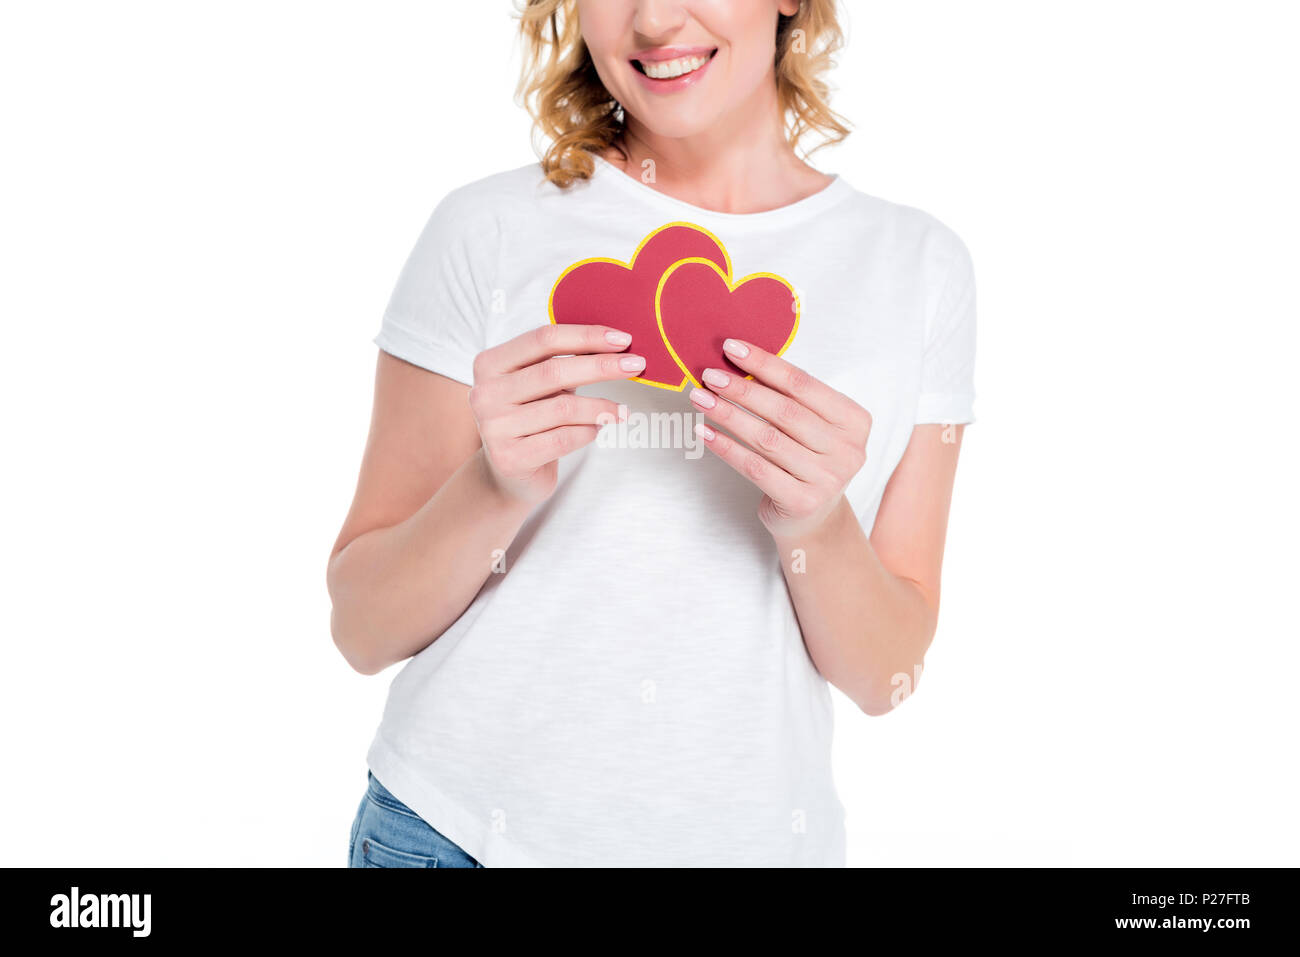 partial view of cheerful woman with heart shaped postcards isolated on white, st valentines day concept - Stock Image